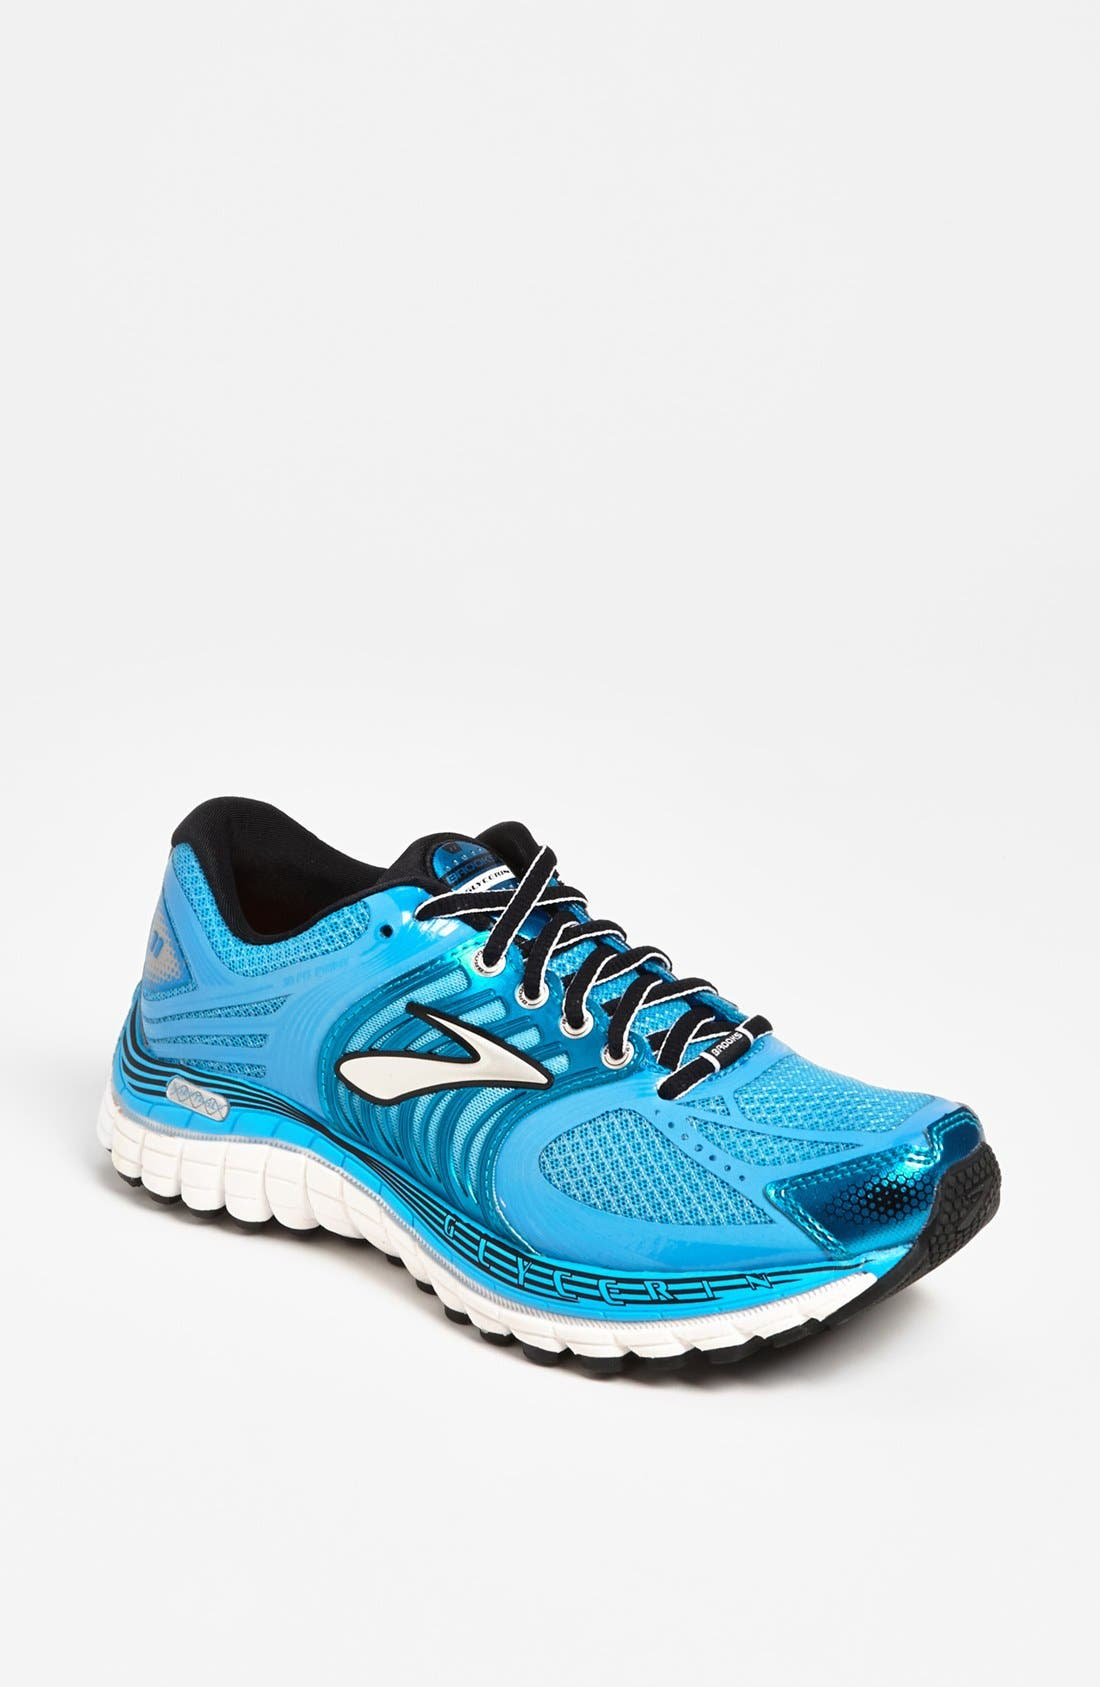 Alternate Image 1 Selected - Brooks 'Glycerin 11' Running Shoe (Women) (Regular Retail Price: $149.95)